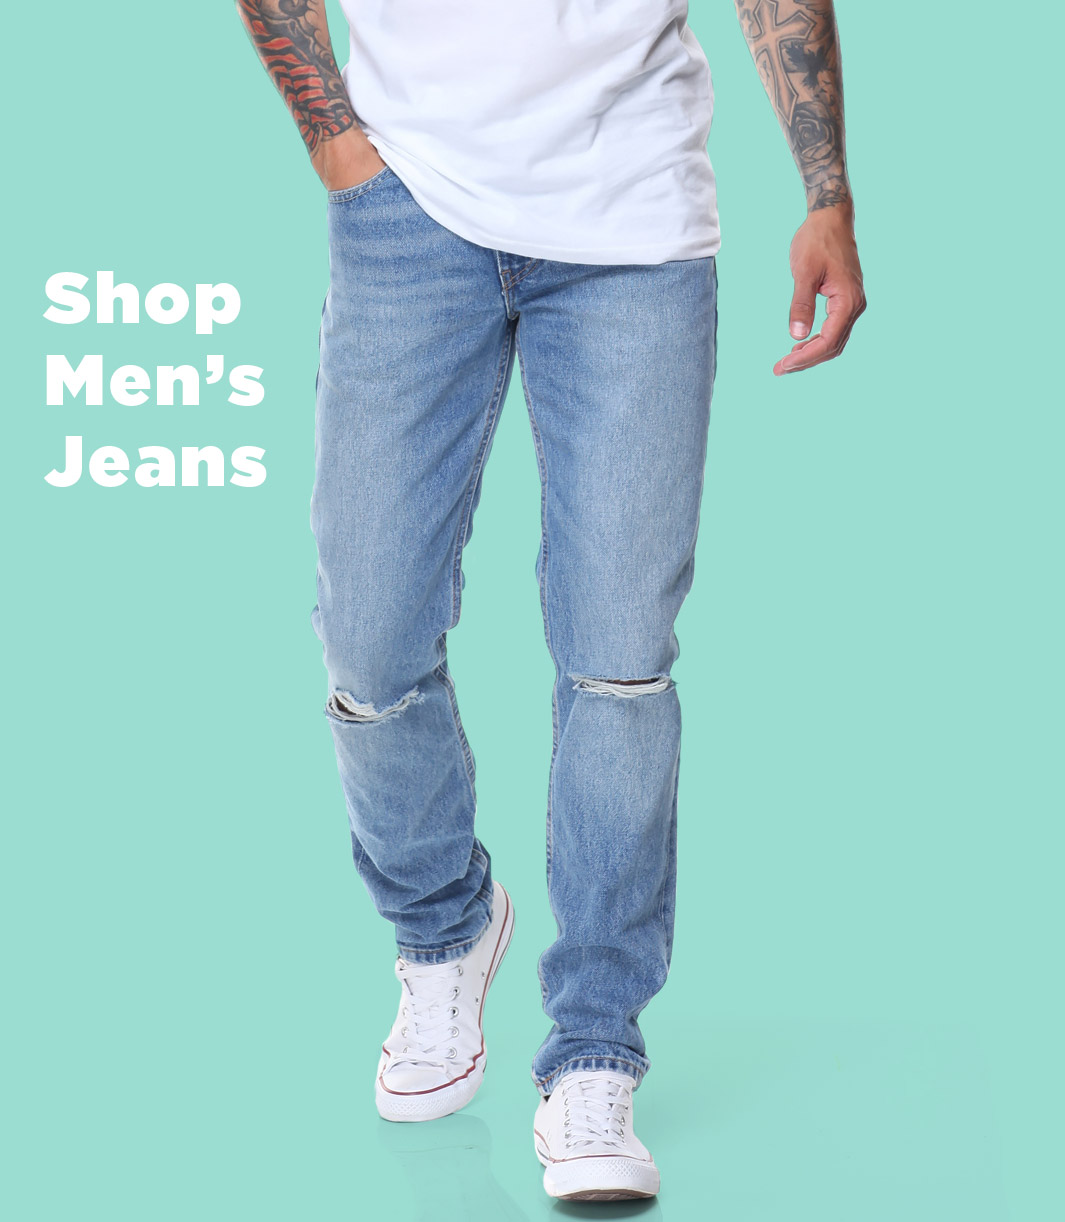 shop men's jeans at drjays.com